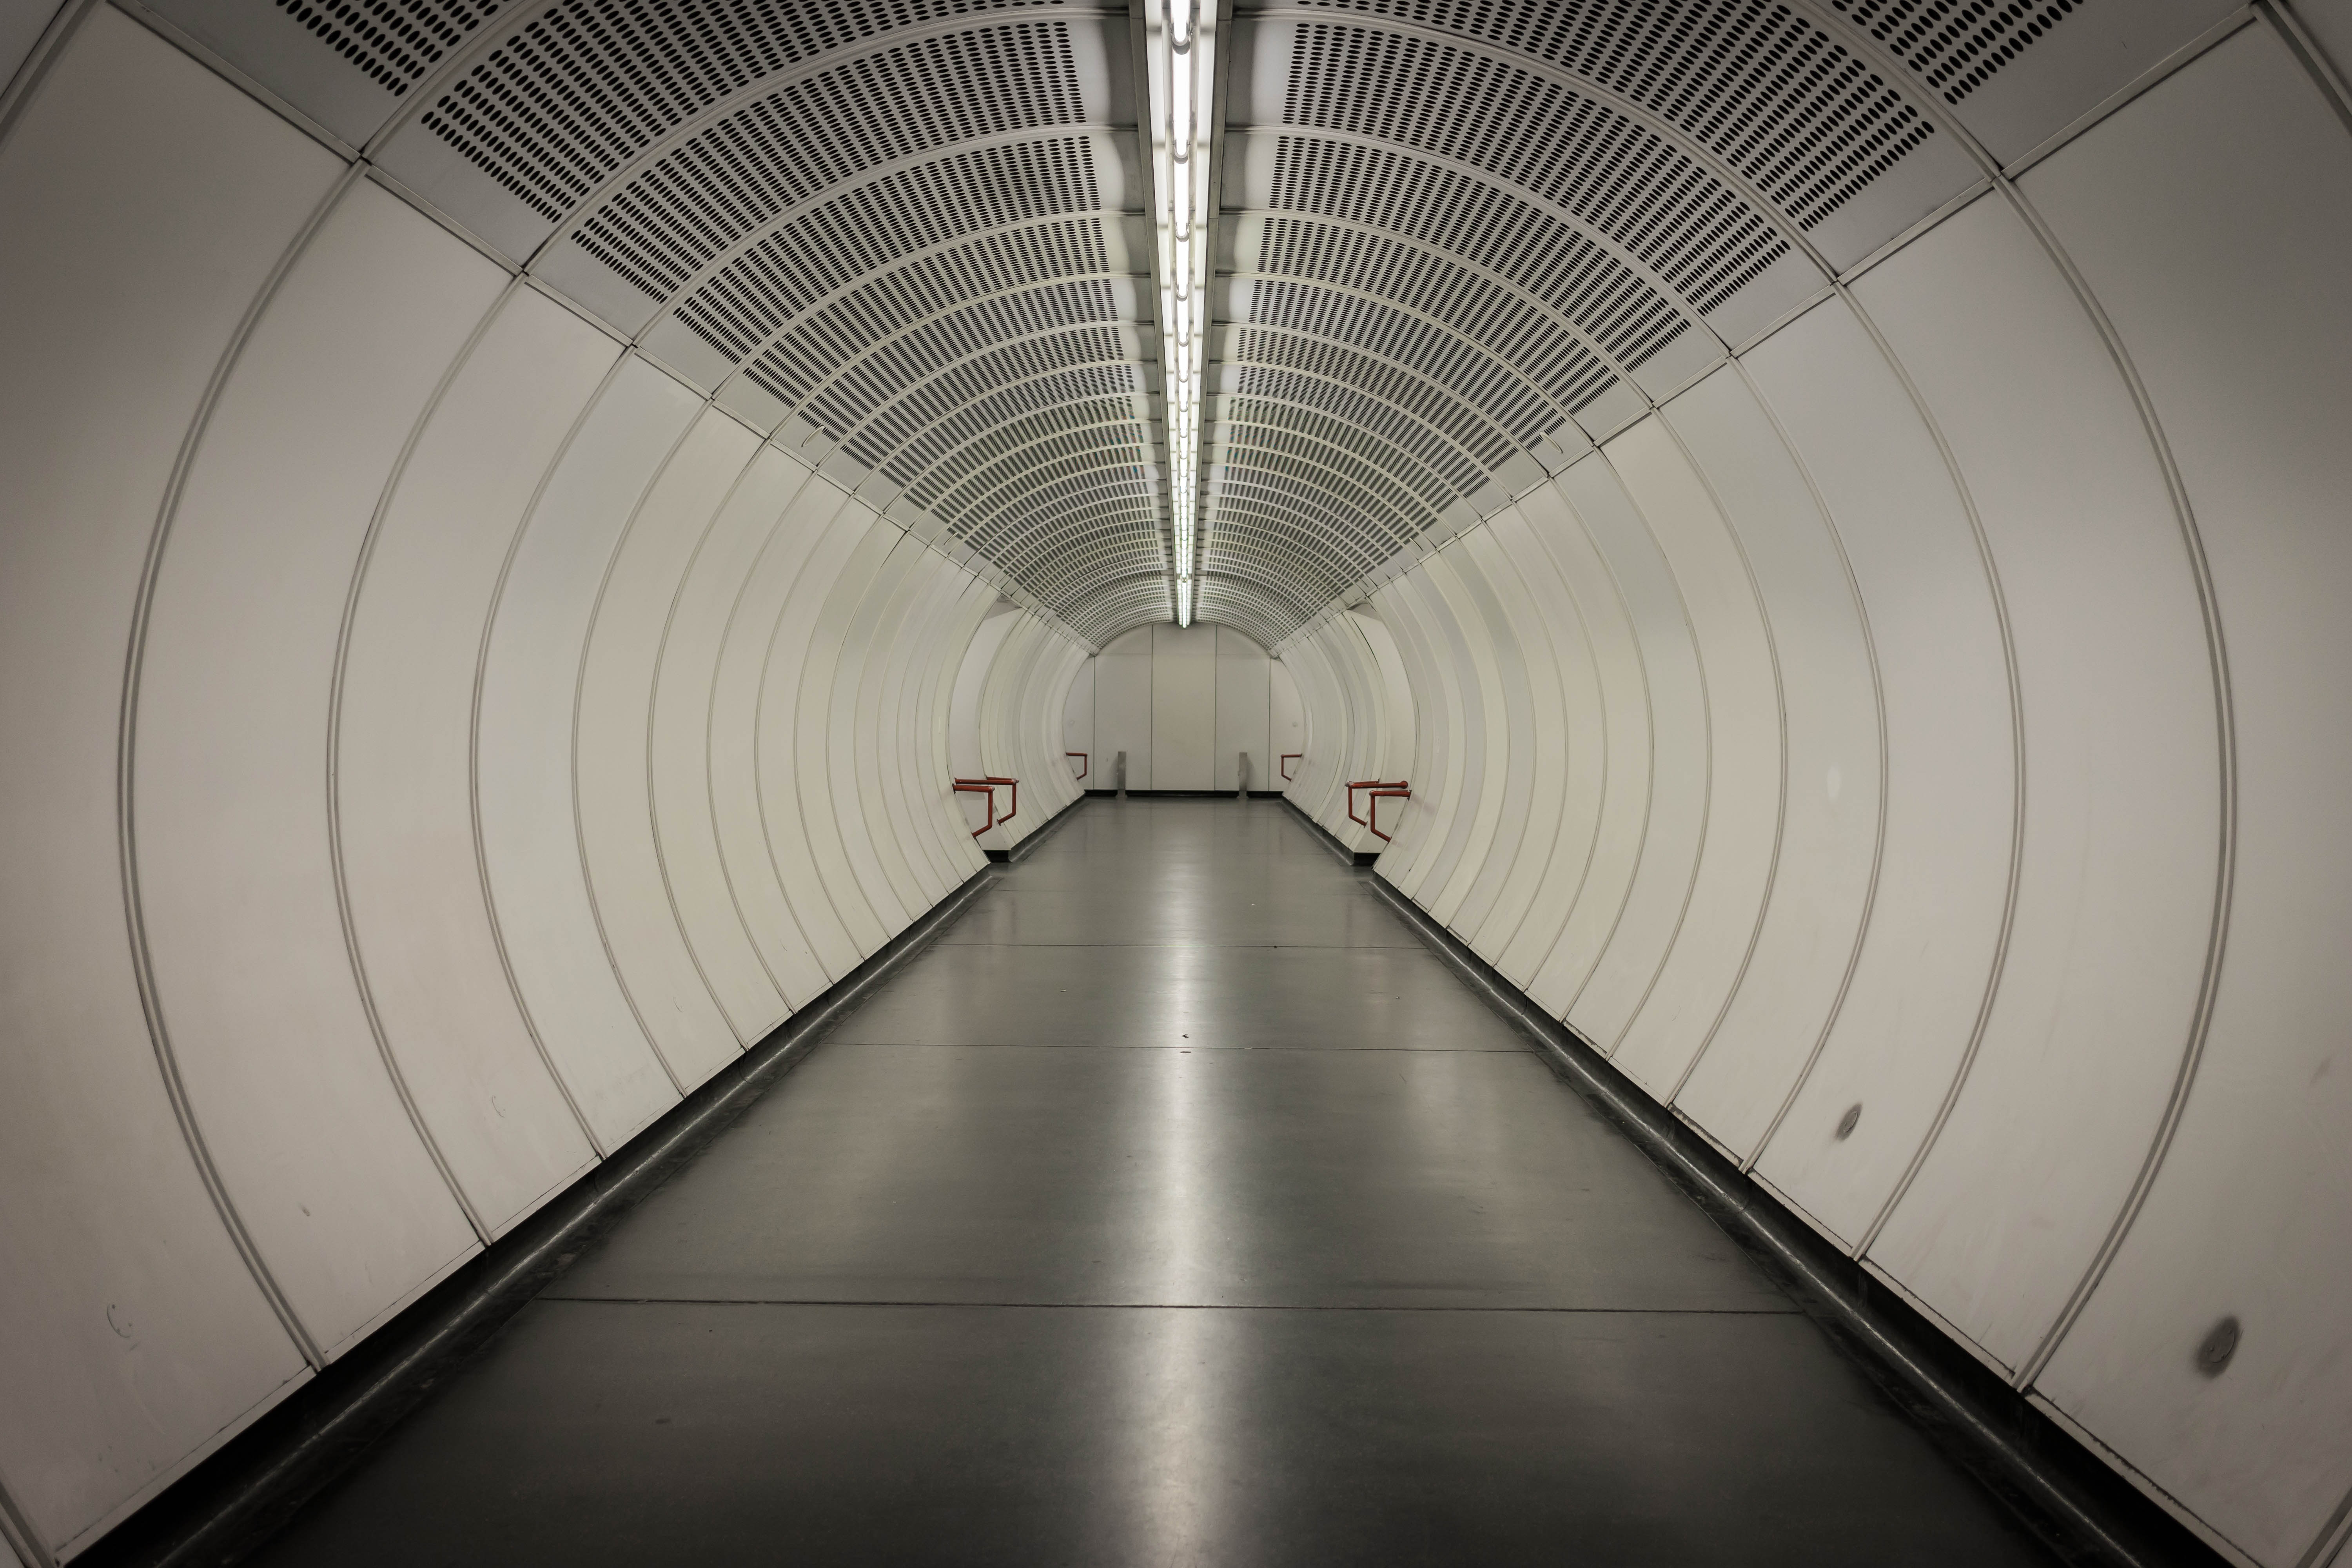 Tunnel Backgrounds, Compatible - PC, Mobile, Gadgets| 6000x4000 px